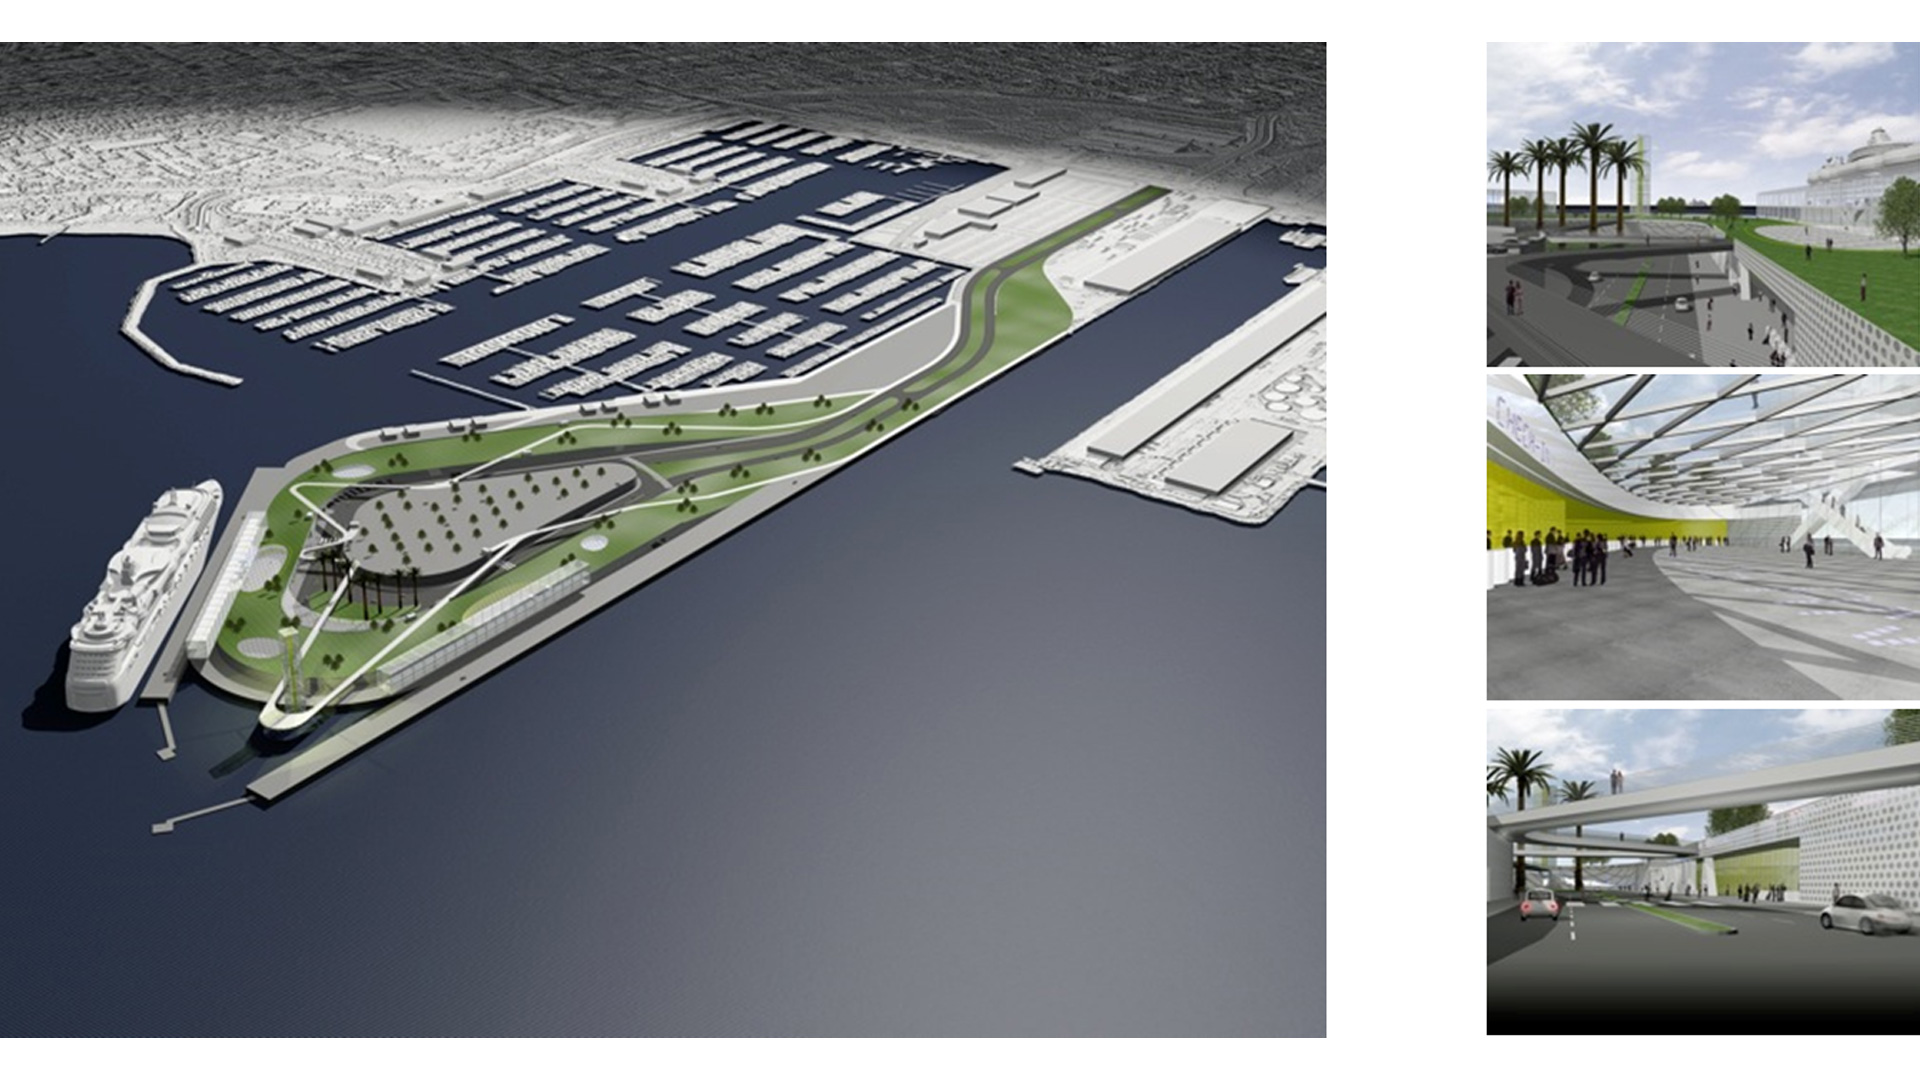 Port of Los Angeles Outer Harbor Cruise Terminal Concept - image